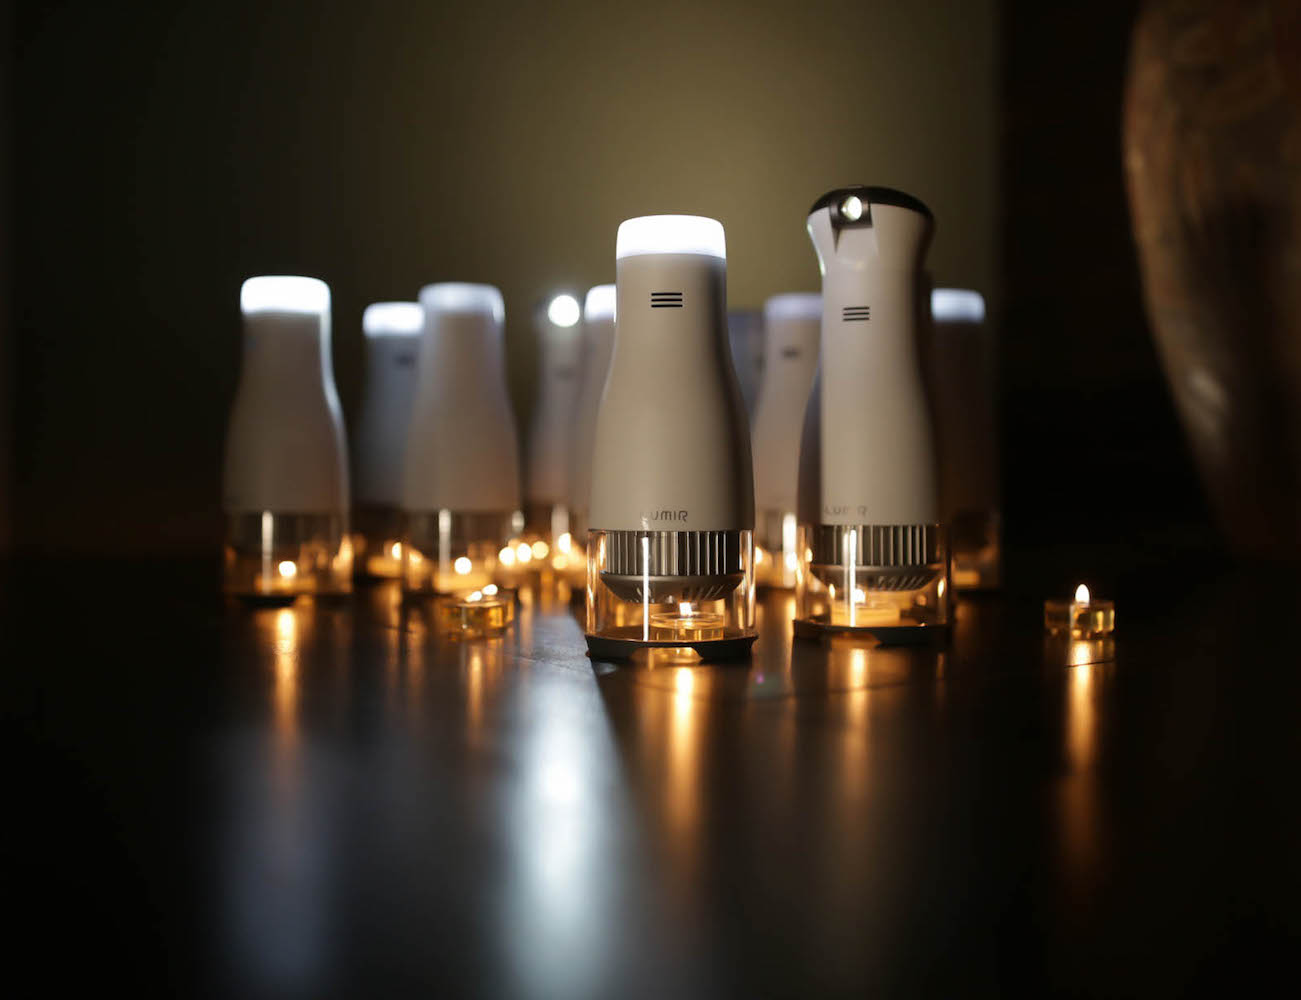 lumir-c-the-candle-powered-led-lamp-02